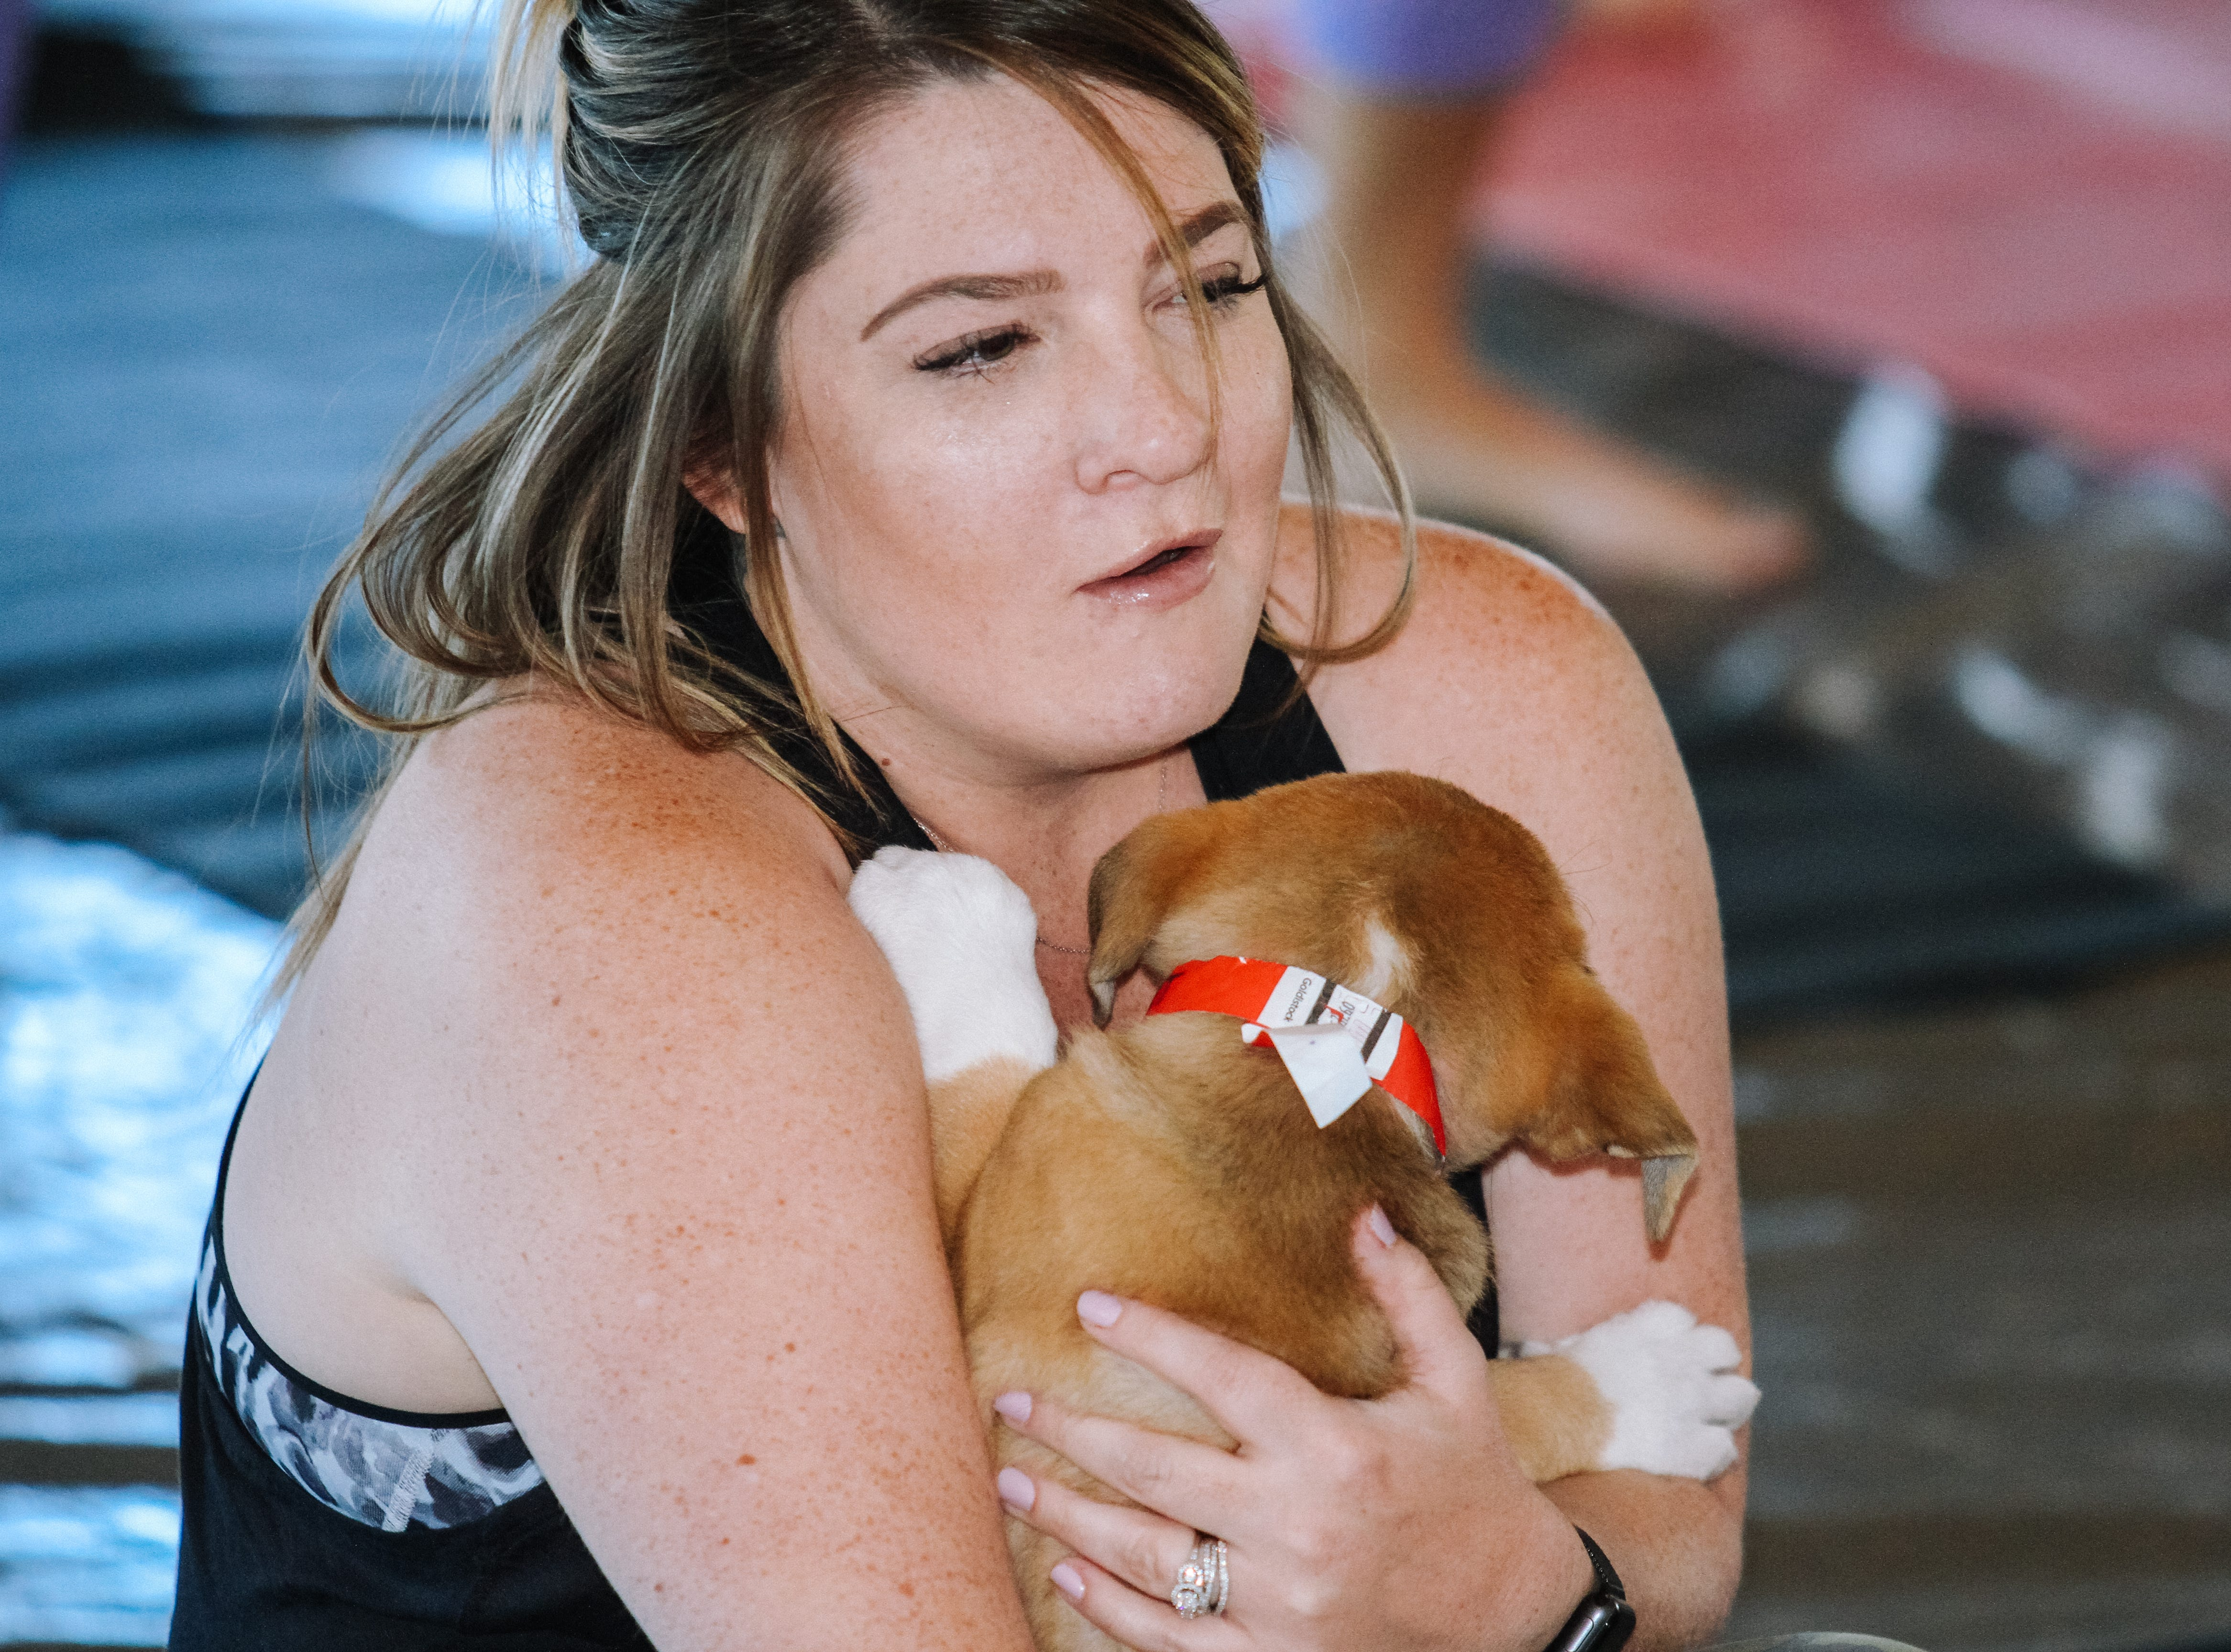 Caitlin Ristau plays with puppies at Puppies, Pilates and Prosecco, an event hosted by Almost There Foster Care at the Wrigley Mansion in Phoenix on April 13, 2019.